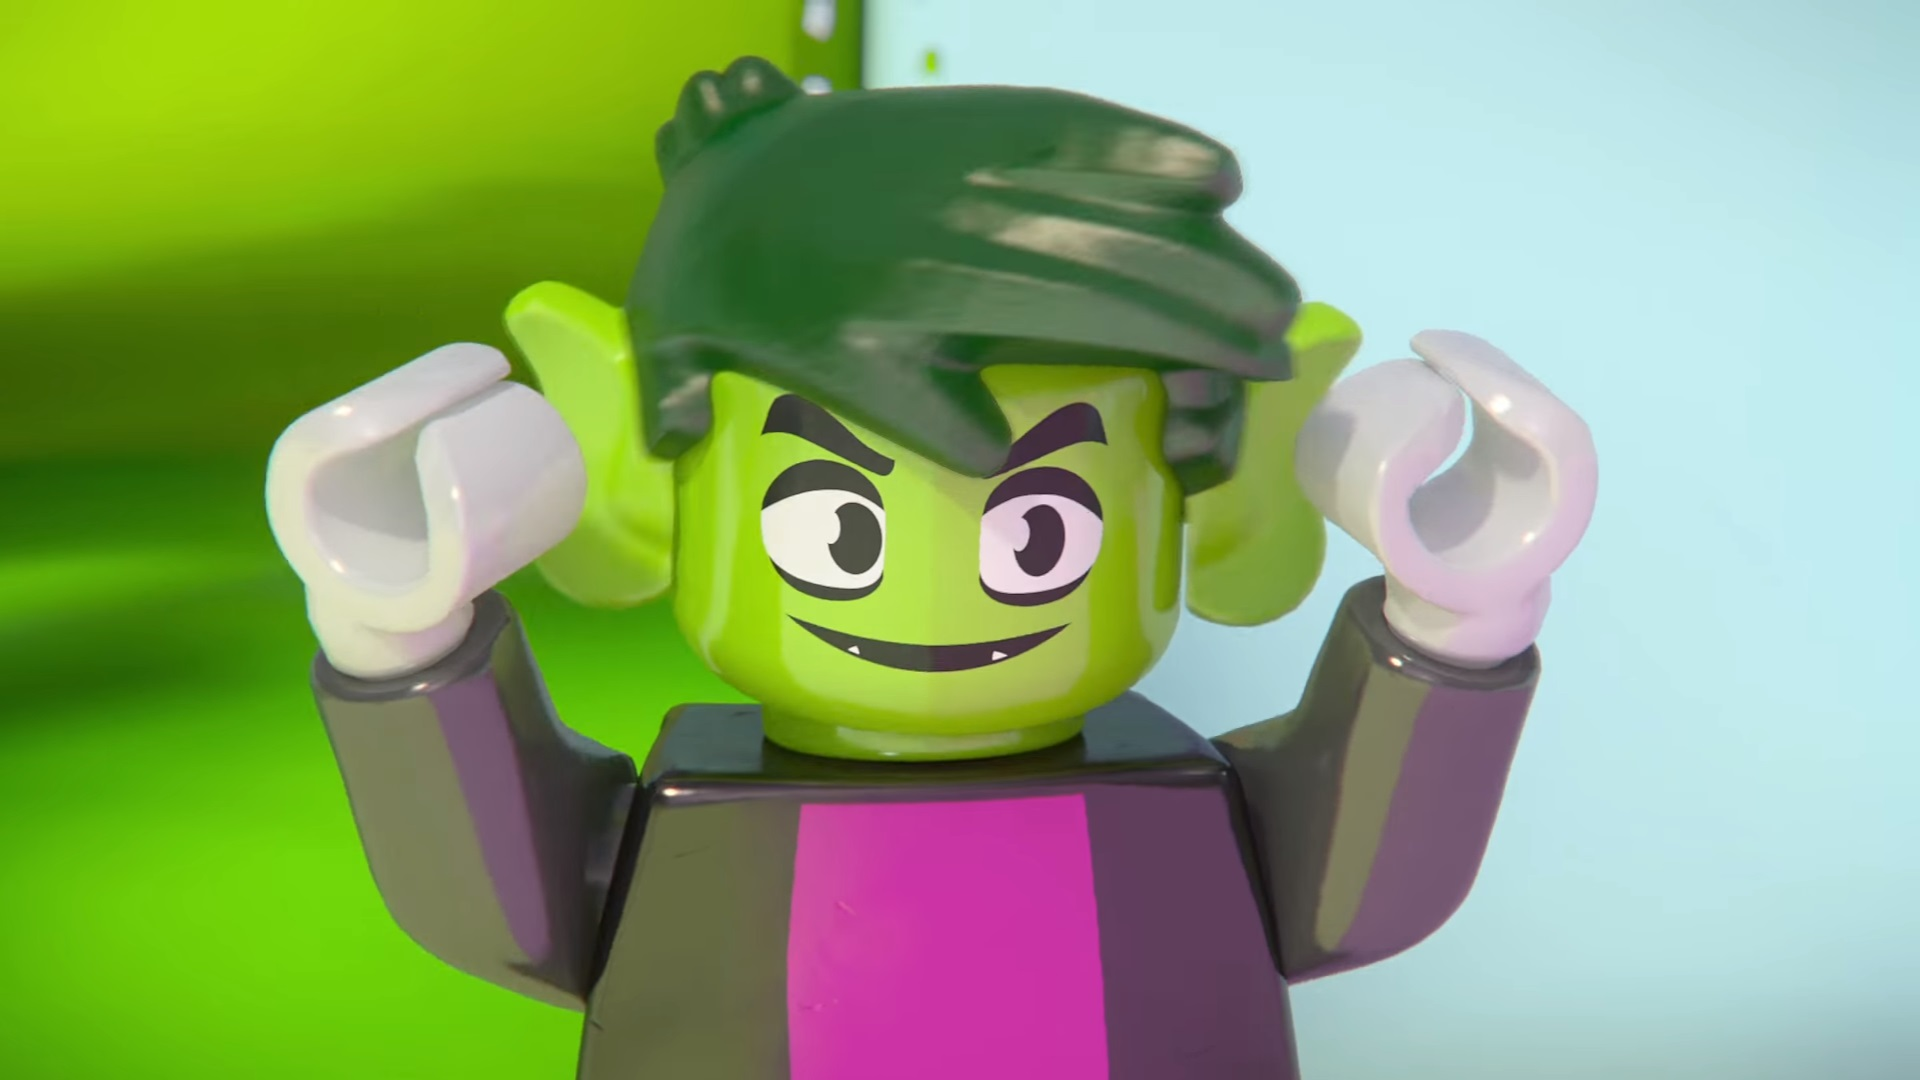 lego beast boy - photo #3